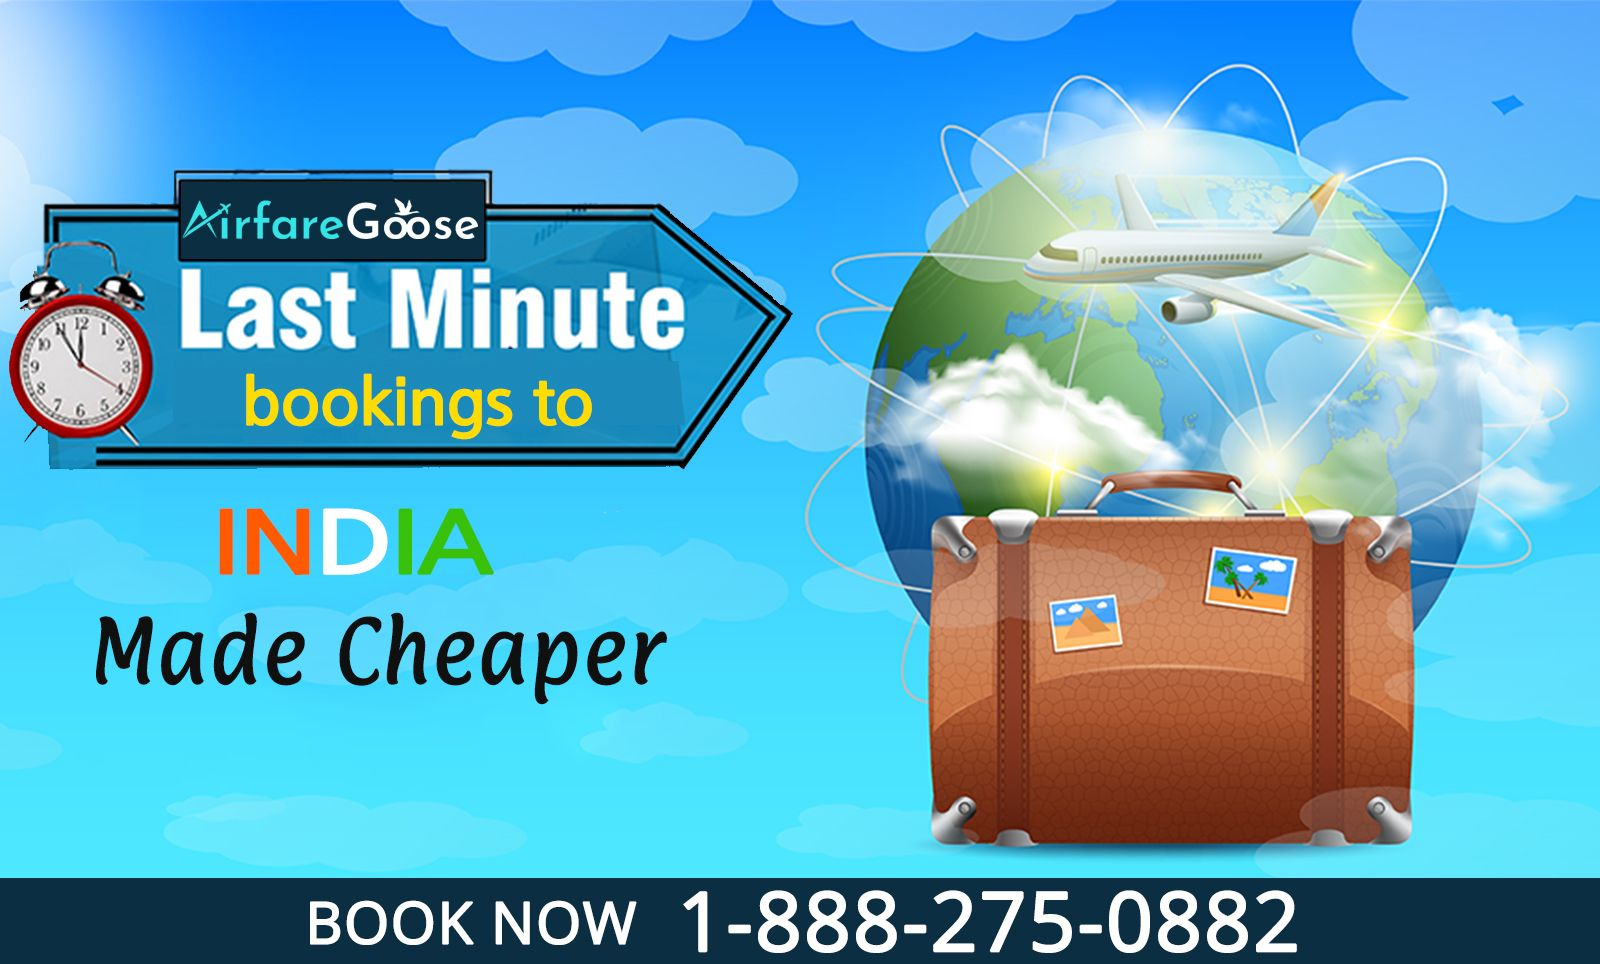 Easy and fast #Booking at best #Price. Get exclusive discounts on your journey with #AirfareGoose. Hurry, Book Now!  Or, Call: -1-888-275-0882 (Toll-Free), info@airfareGoose.  #Travel #BestDeals #Lastminuteflights #LastMinuteDeals #LastMinuteTravel #FlightsToIndia #CheapFlightsToIndia #FlightDeals #LowCost #FlightTickets #traveling #Travelers #explore #travelmore #travellifestyle